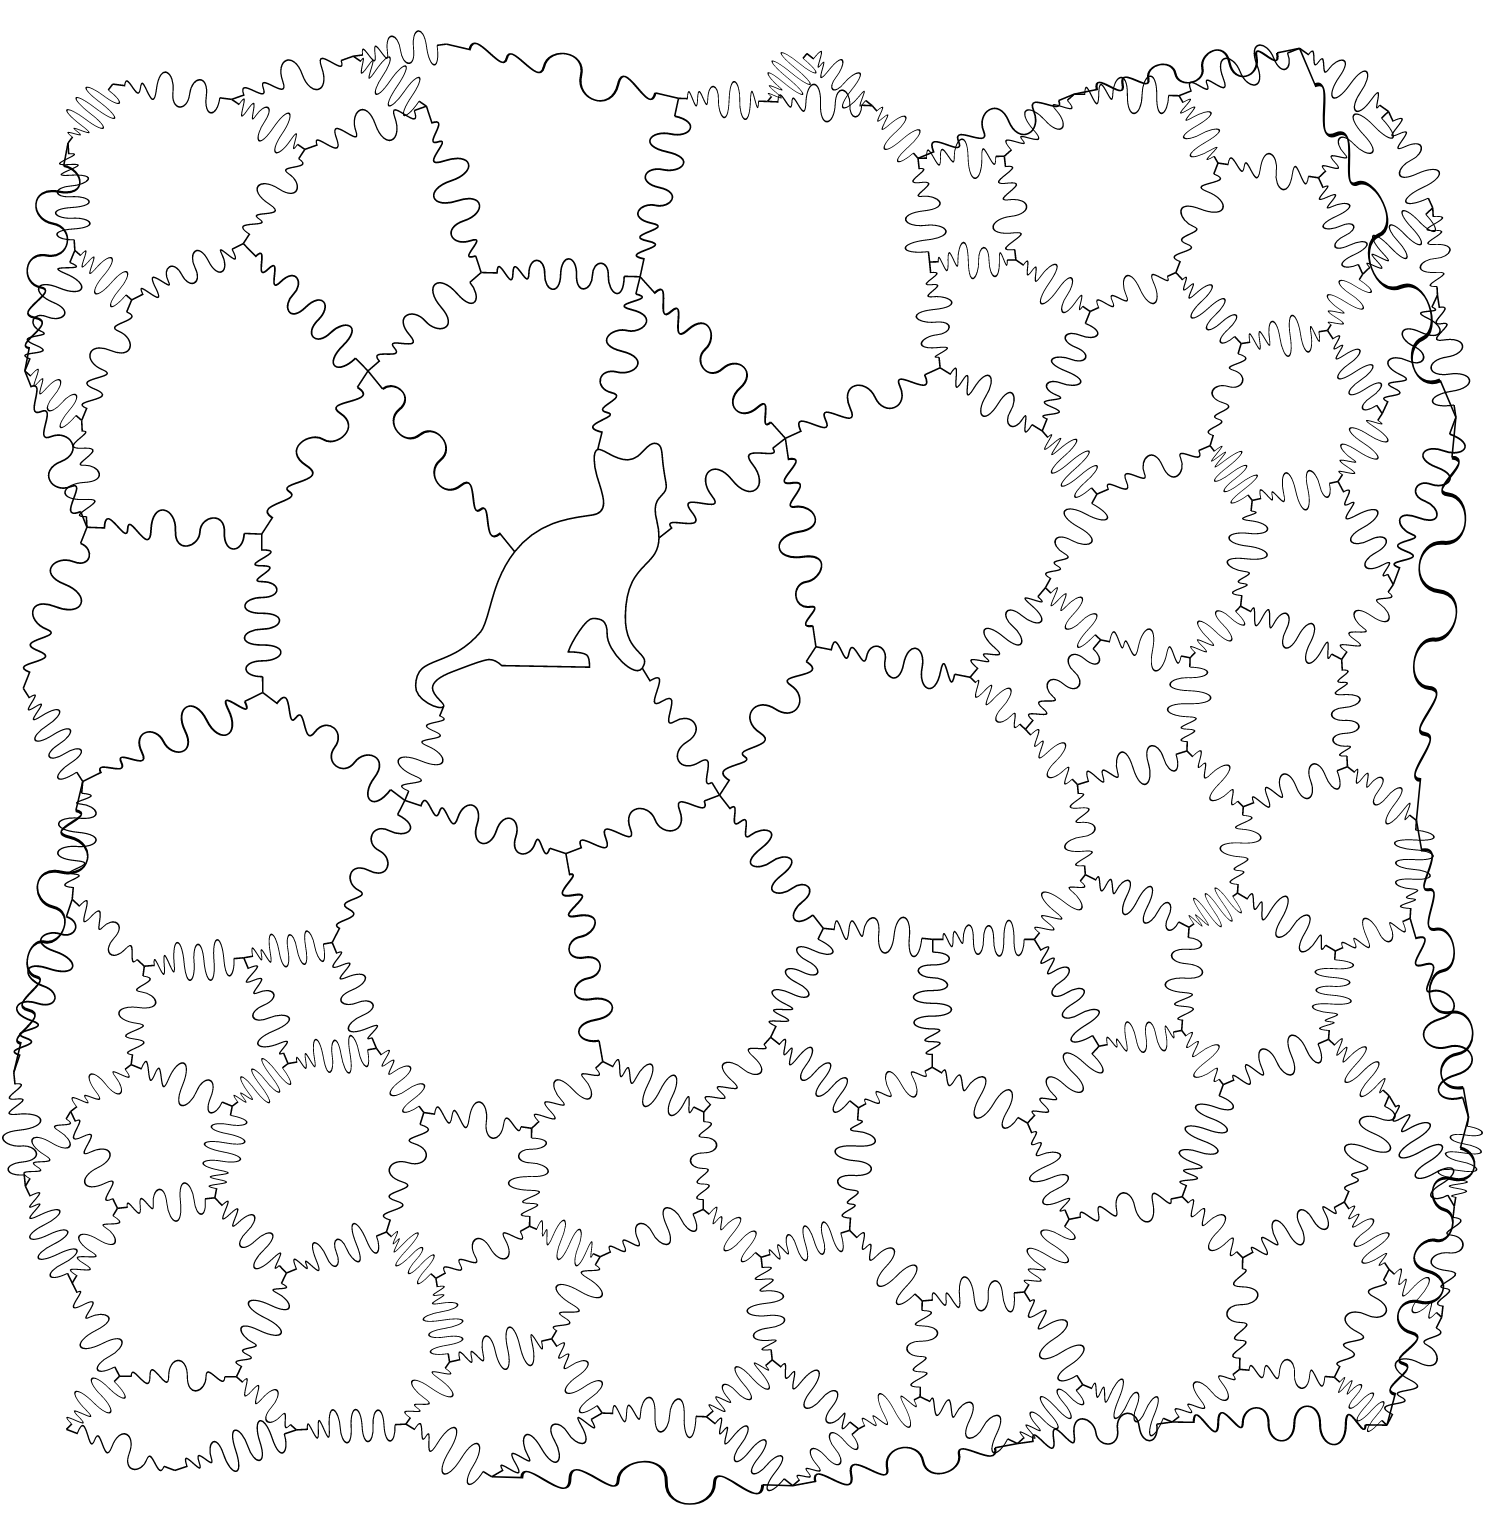 A black-and-white outline of a jigsaw puzzle. There's a cat shaped piece in the top left.